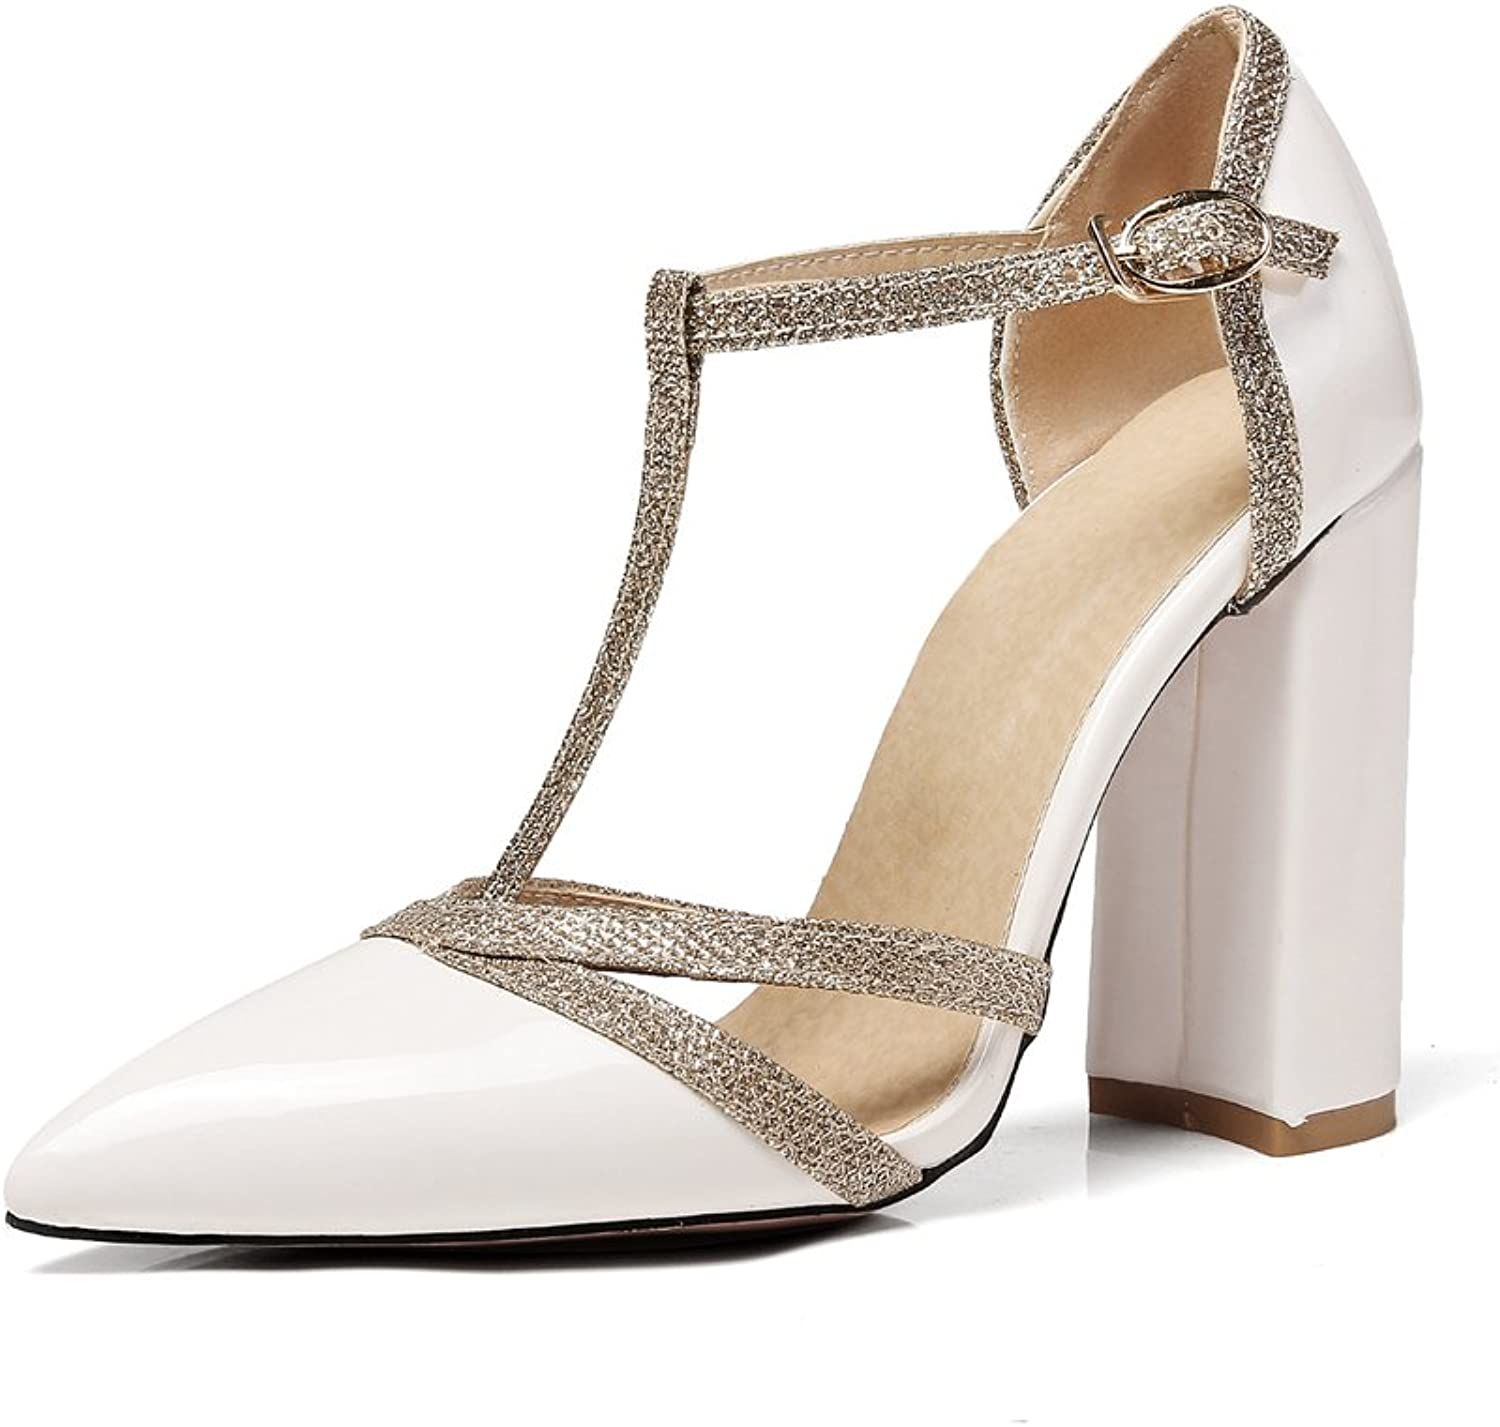 Women Pointed Heeled Sandals Trendy Closed Toe Block Heel Pumps Ankle Buckle Party Dress shoes